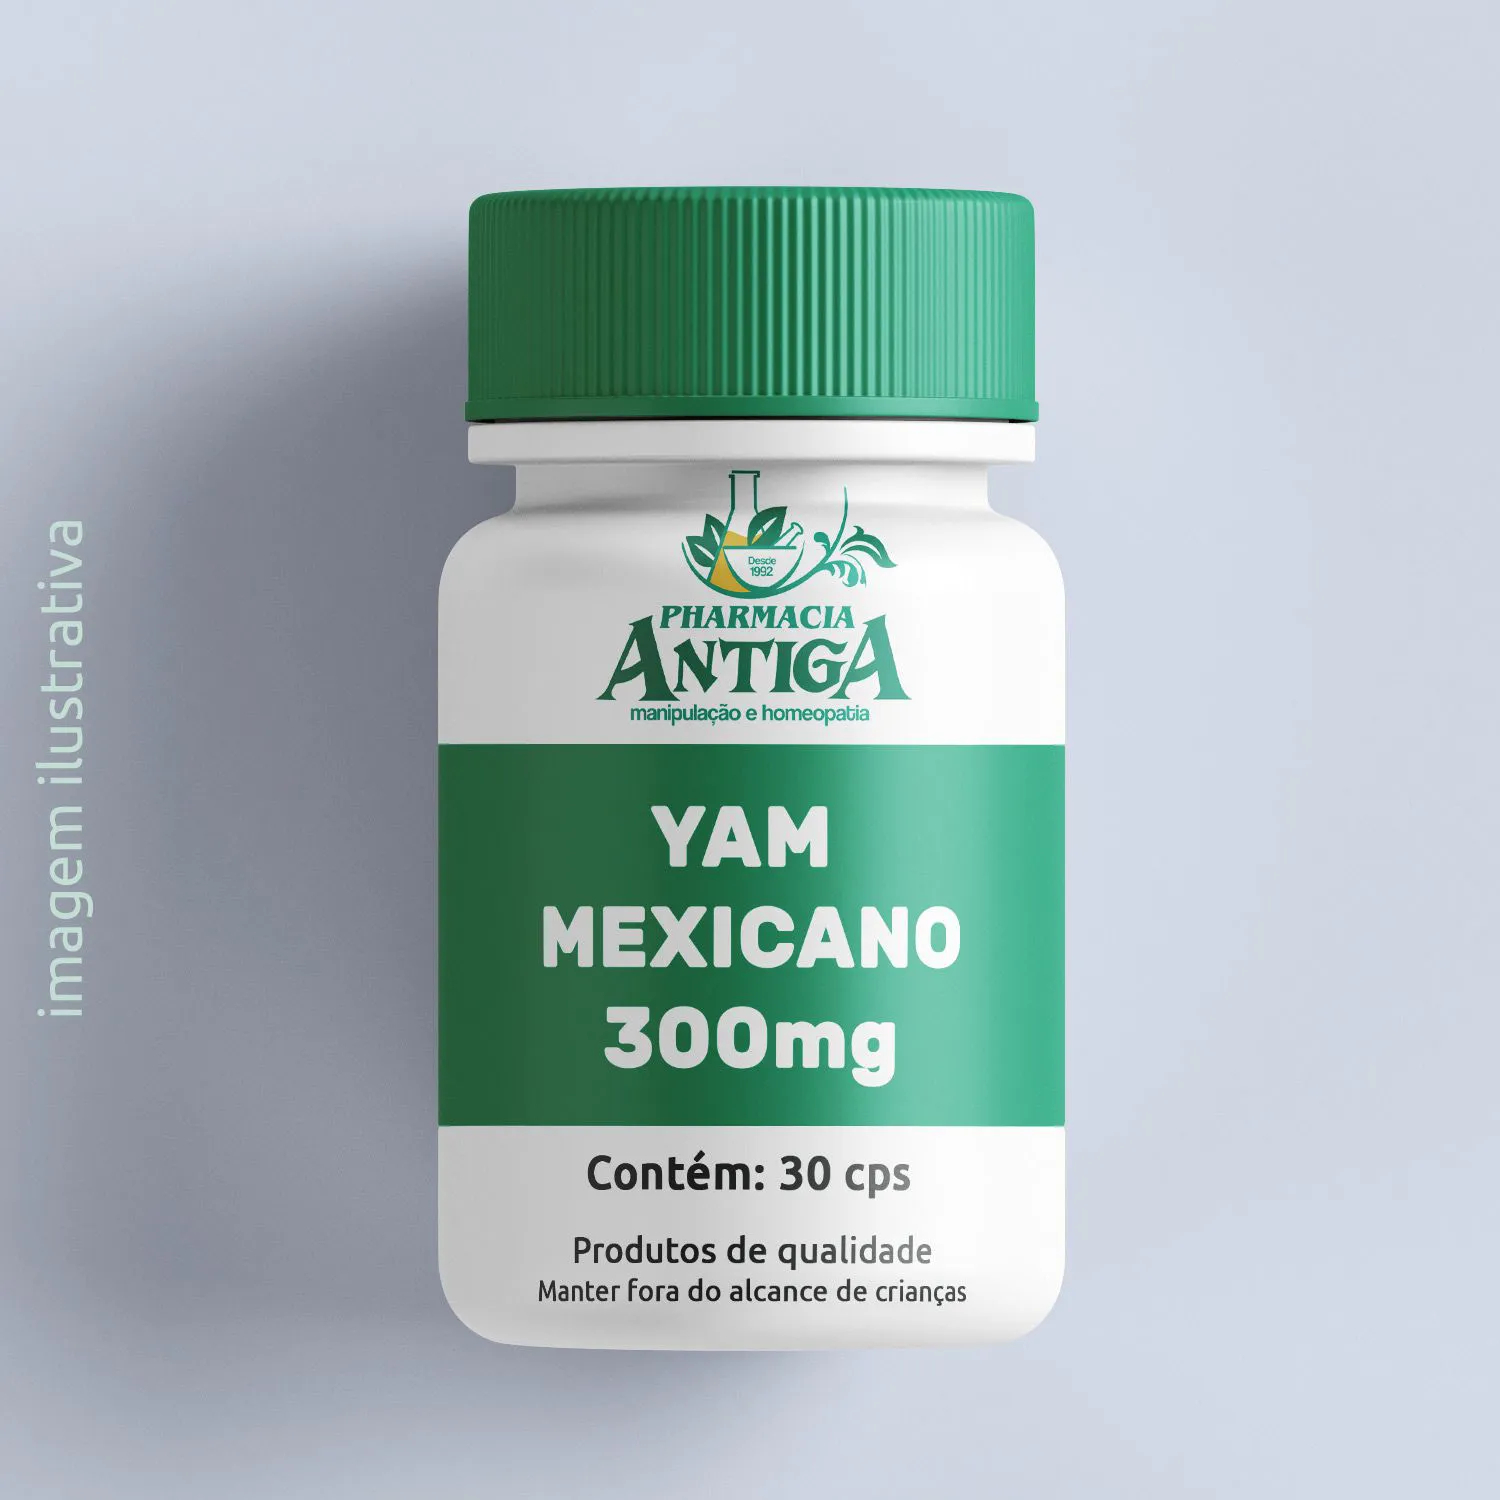 YAM MEXICANO-300MG 30cps